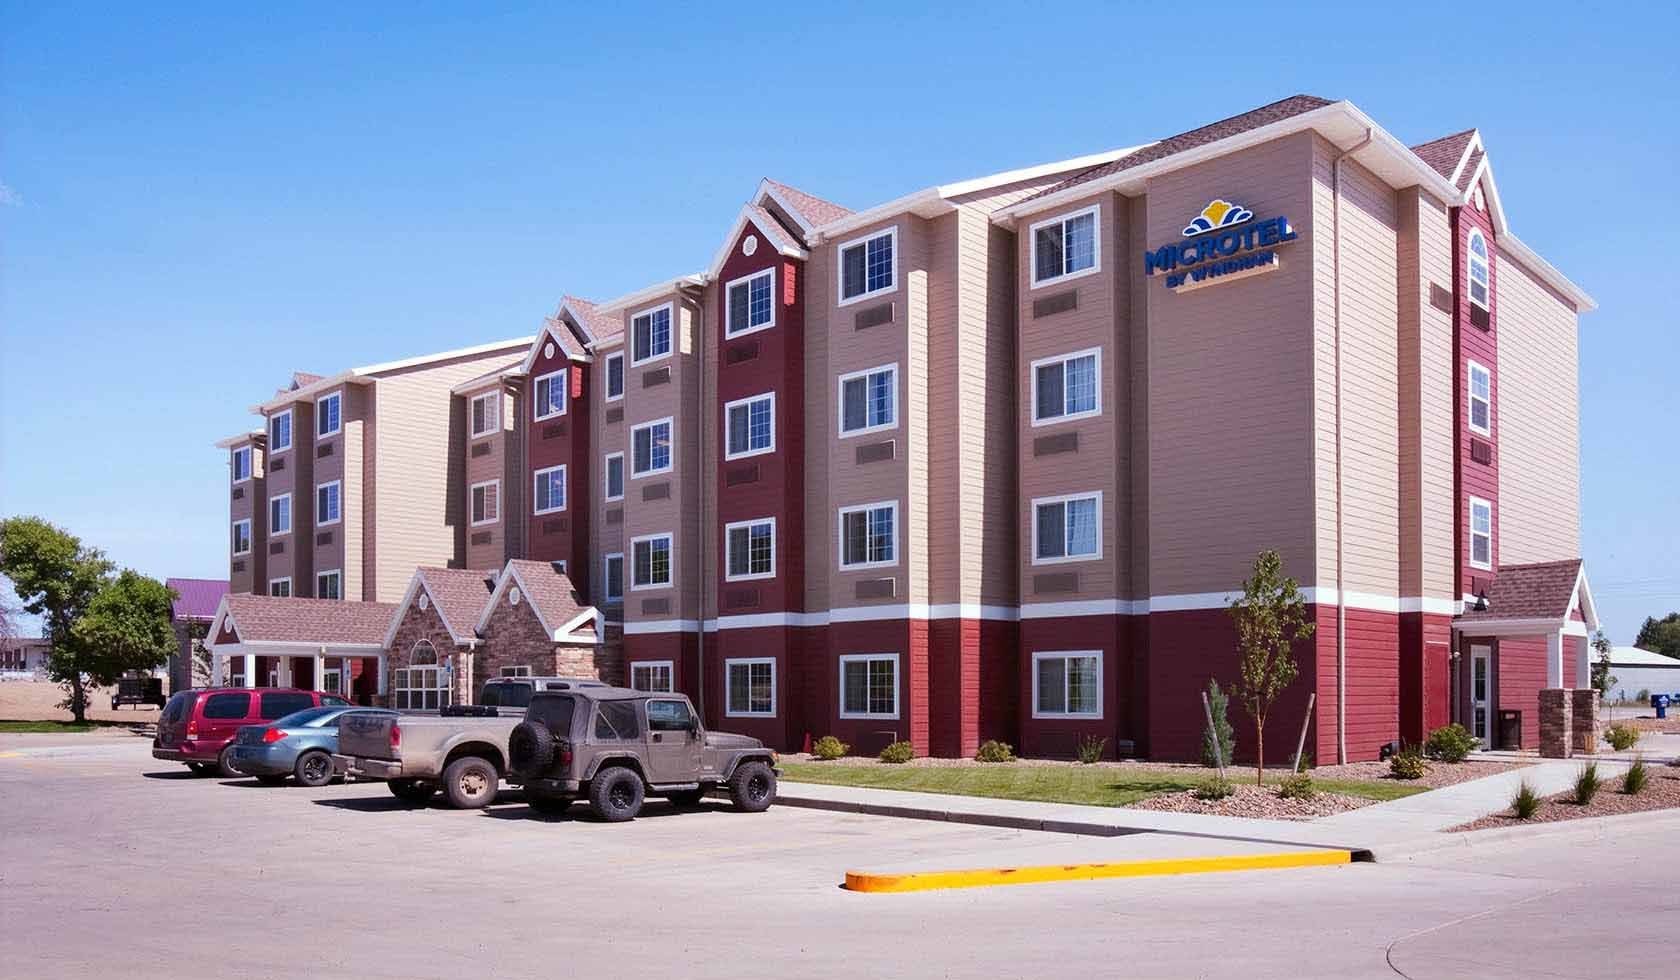 Microtel Inn & Suites | Missouri River Country